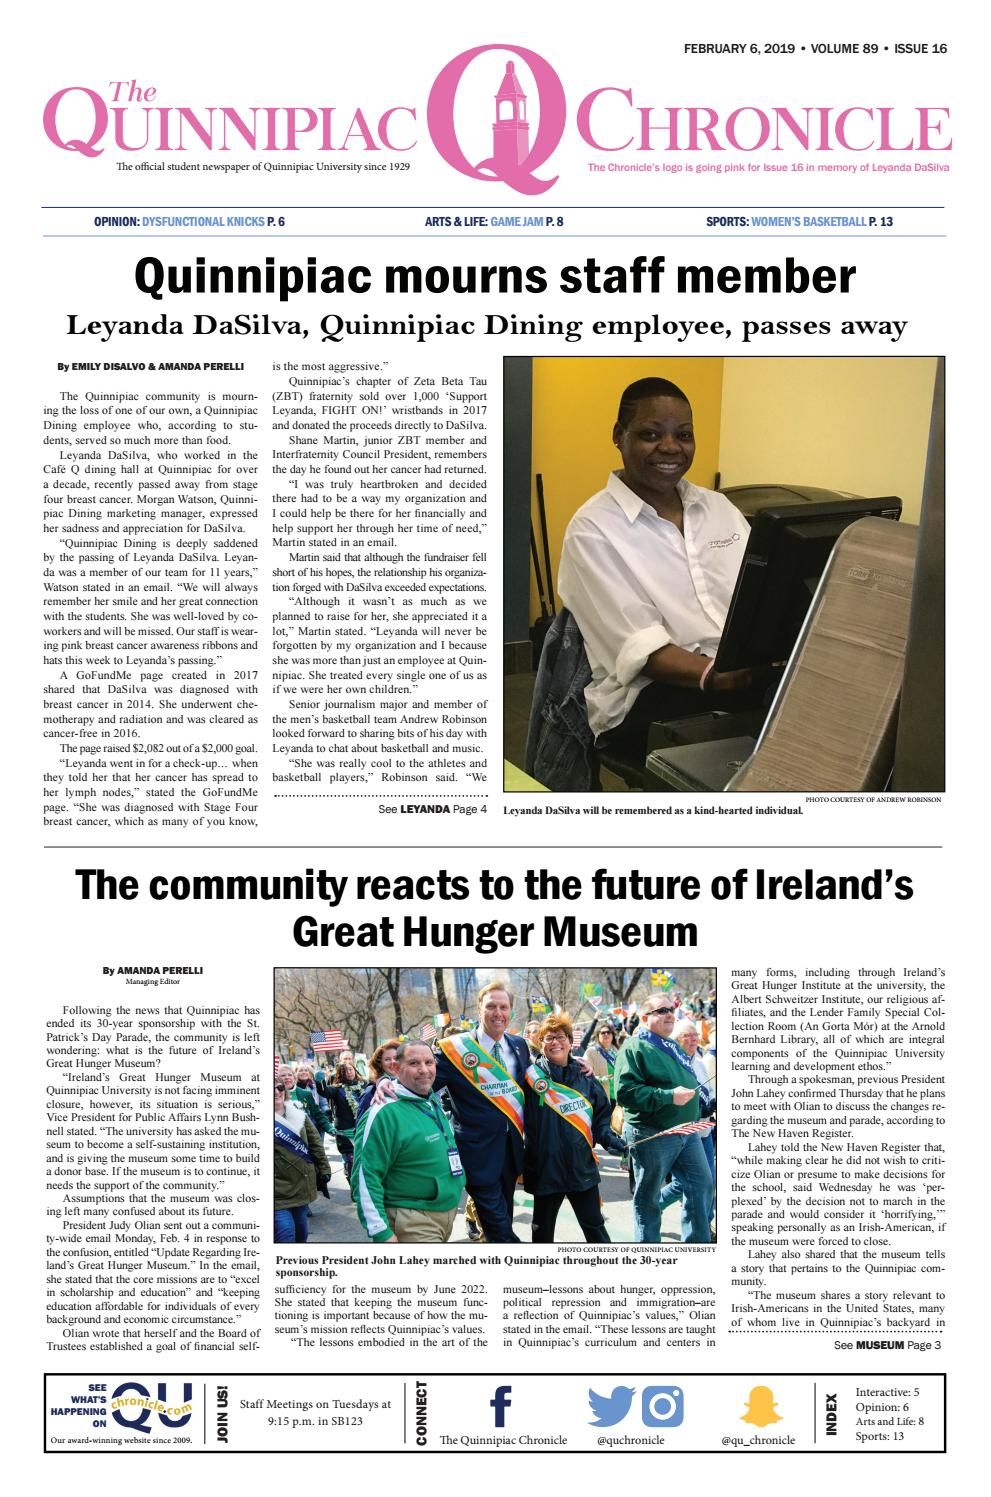 The Quinnipiac Chronicle, Issue 16 Volume 89 by The